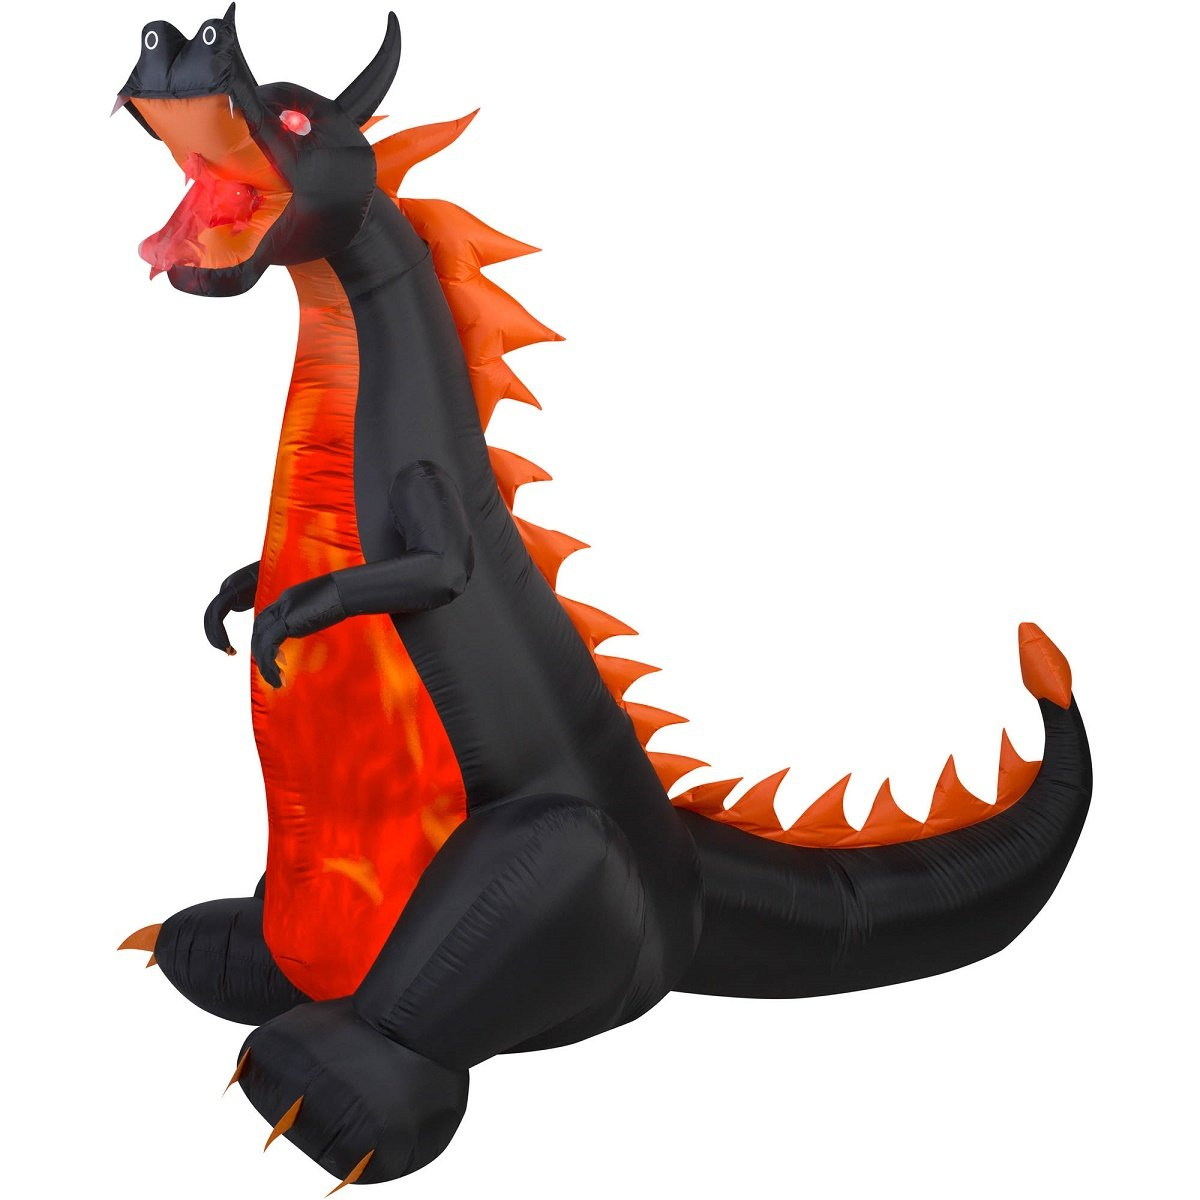 Amazon.com: Gemmy Airblown Inflatable 7\' X 7.5\' Dragon with Lights ...